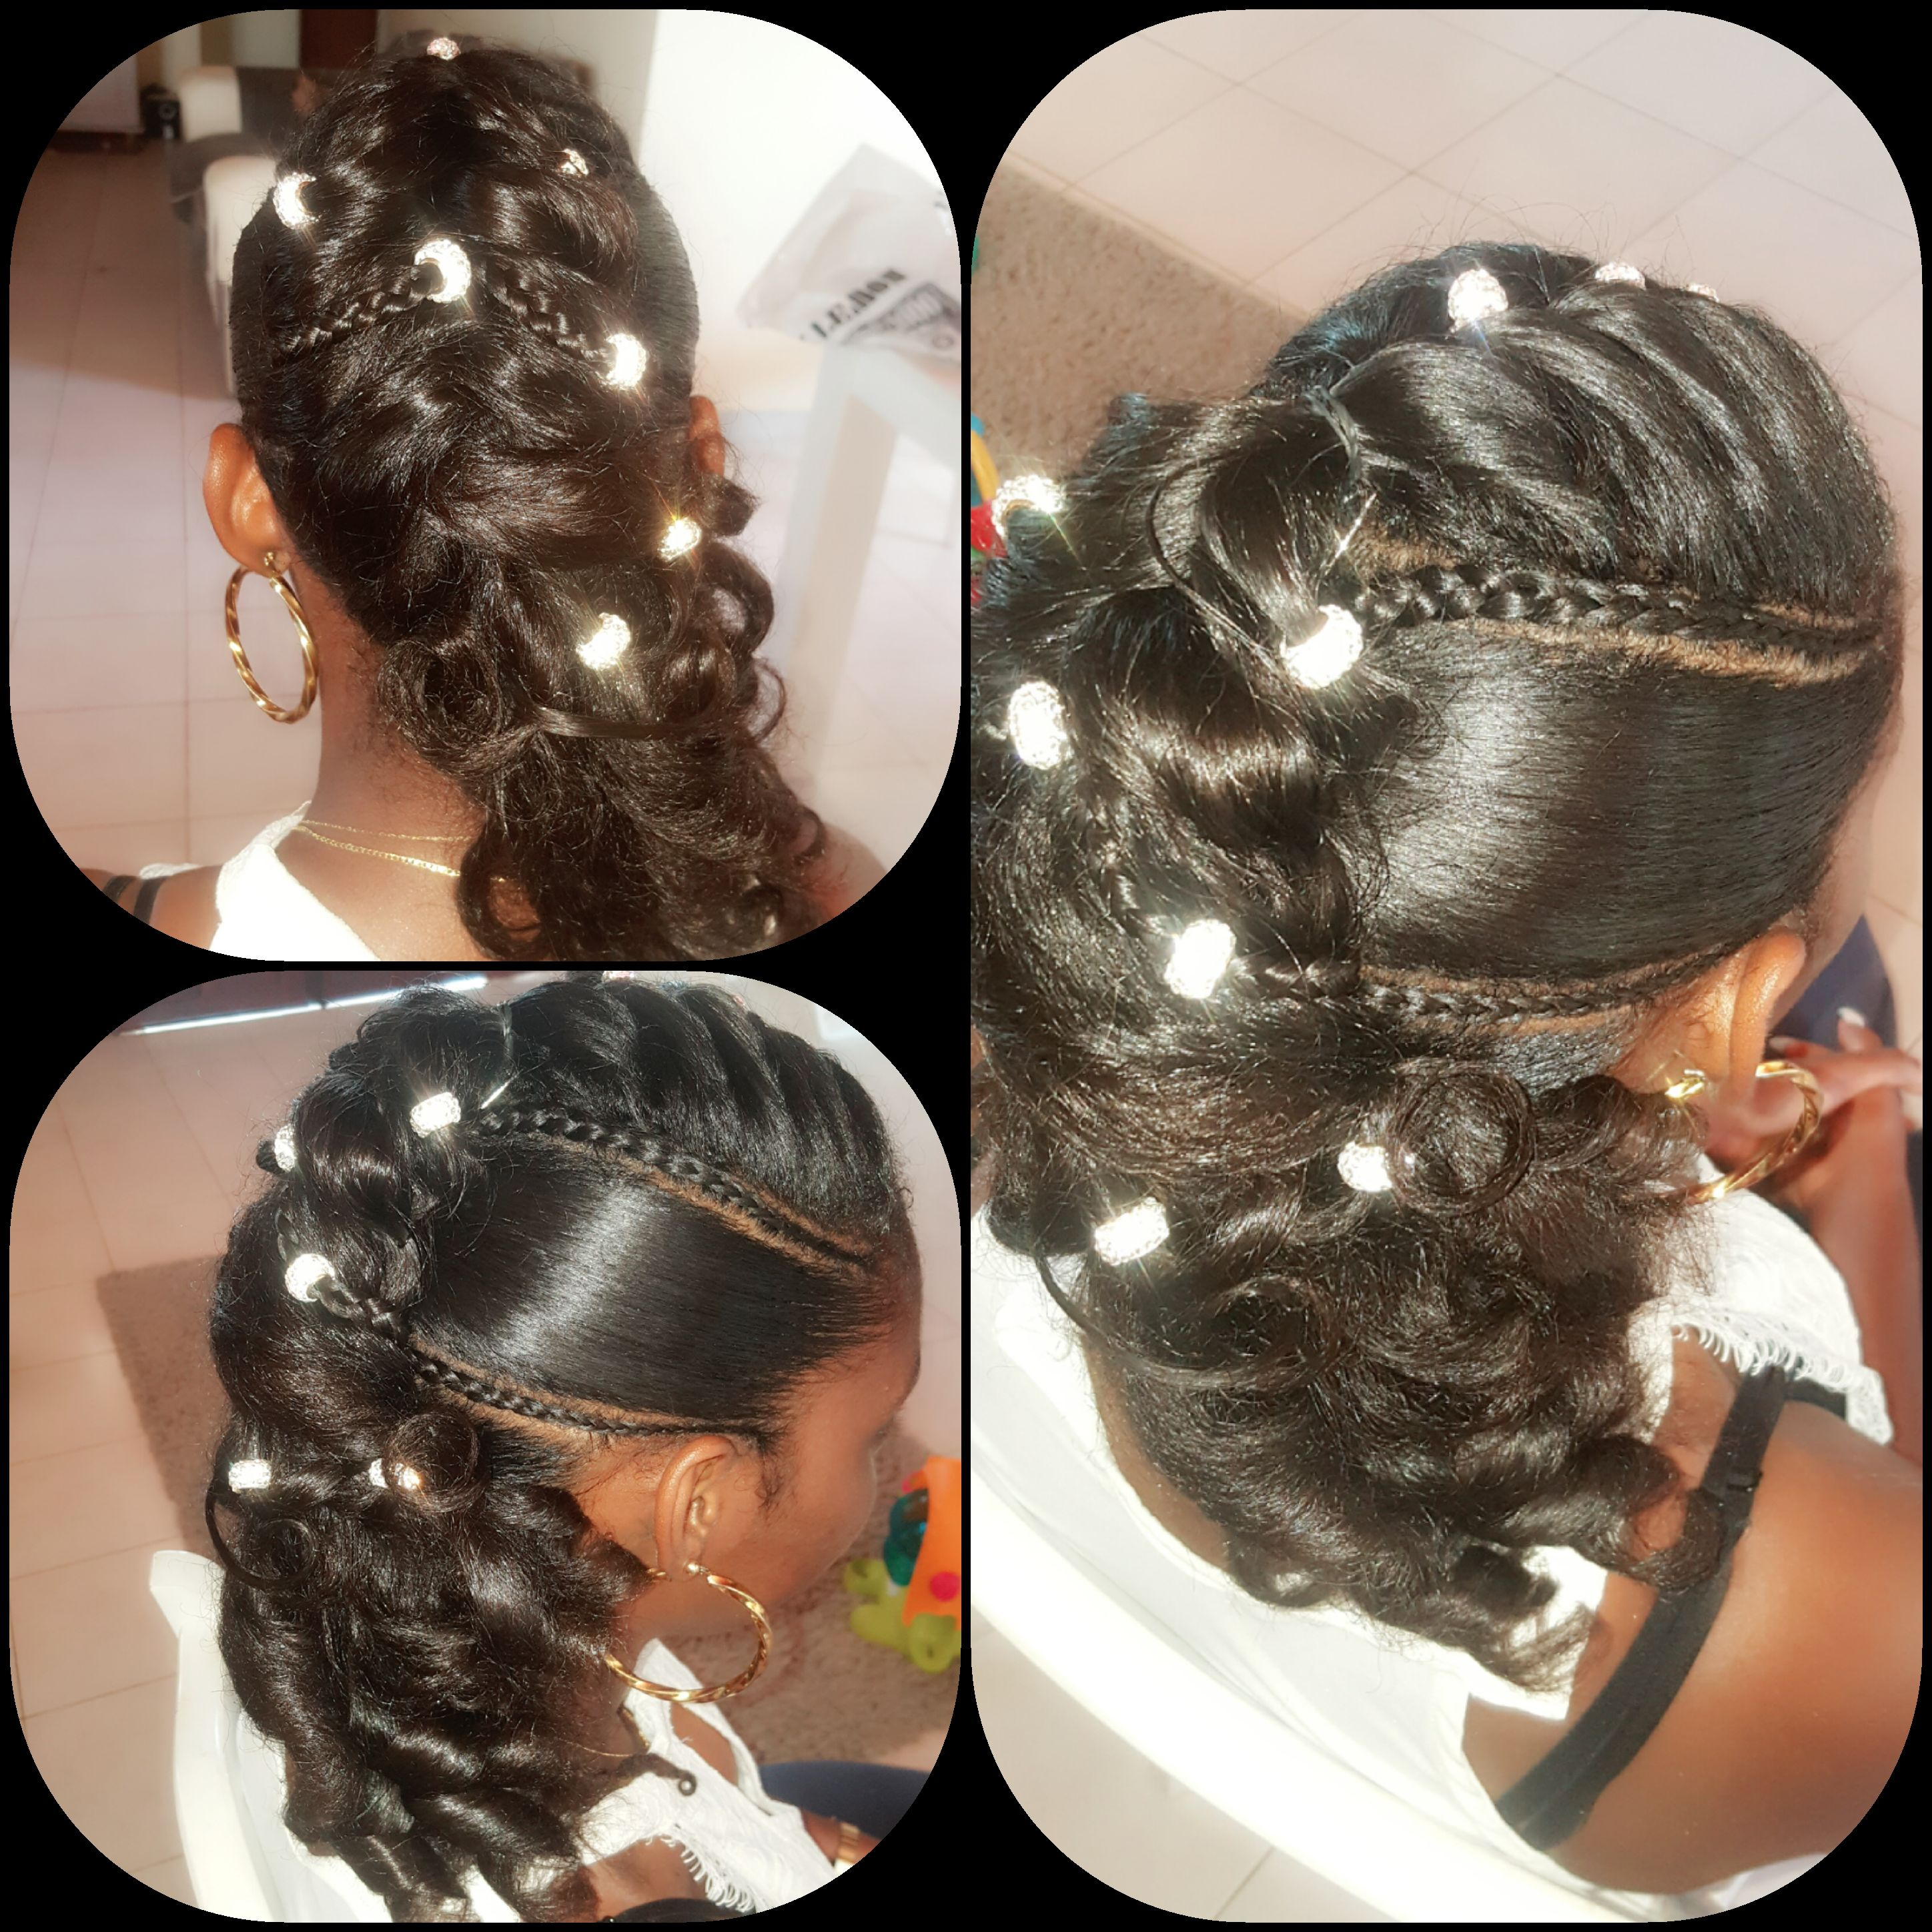 salon de coiffure afro tresse tresses box braids crochet braids vanilles tissages paris 75 77 78 91 92 93 94 95 VAZFMTSZ